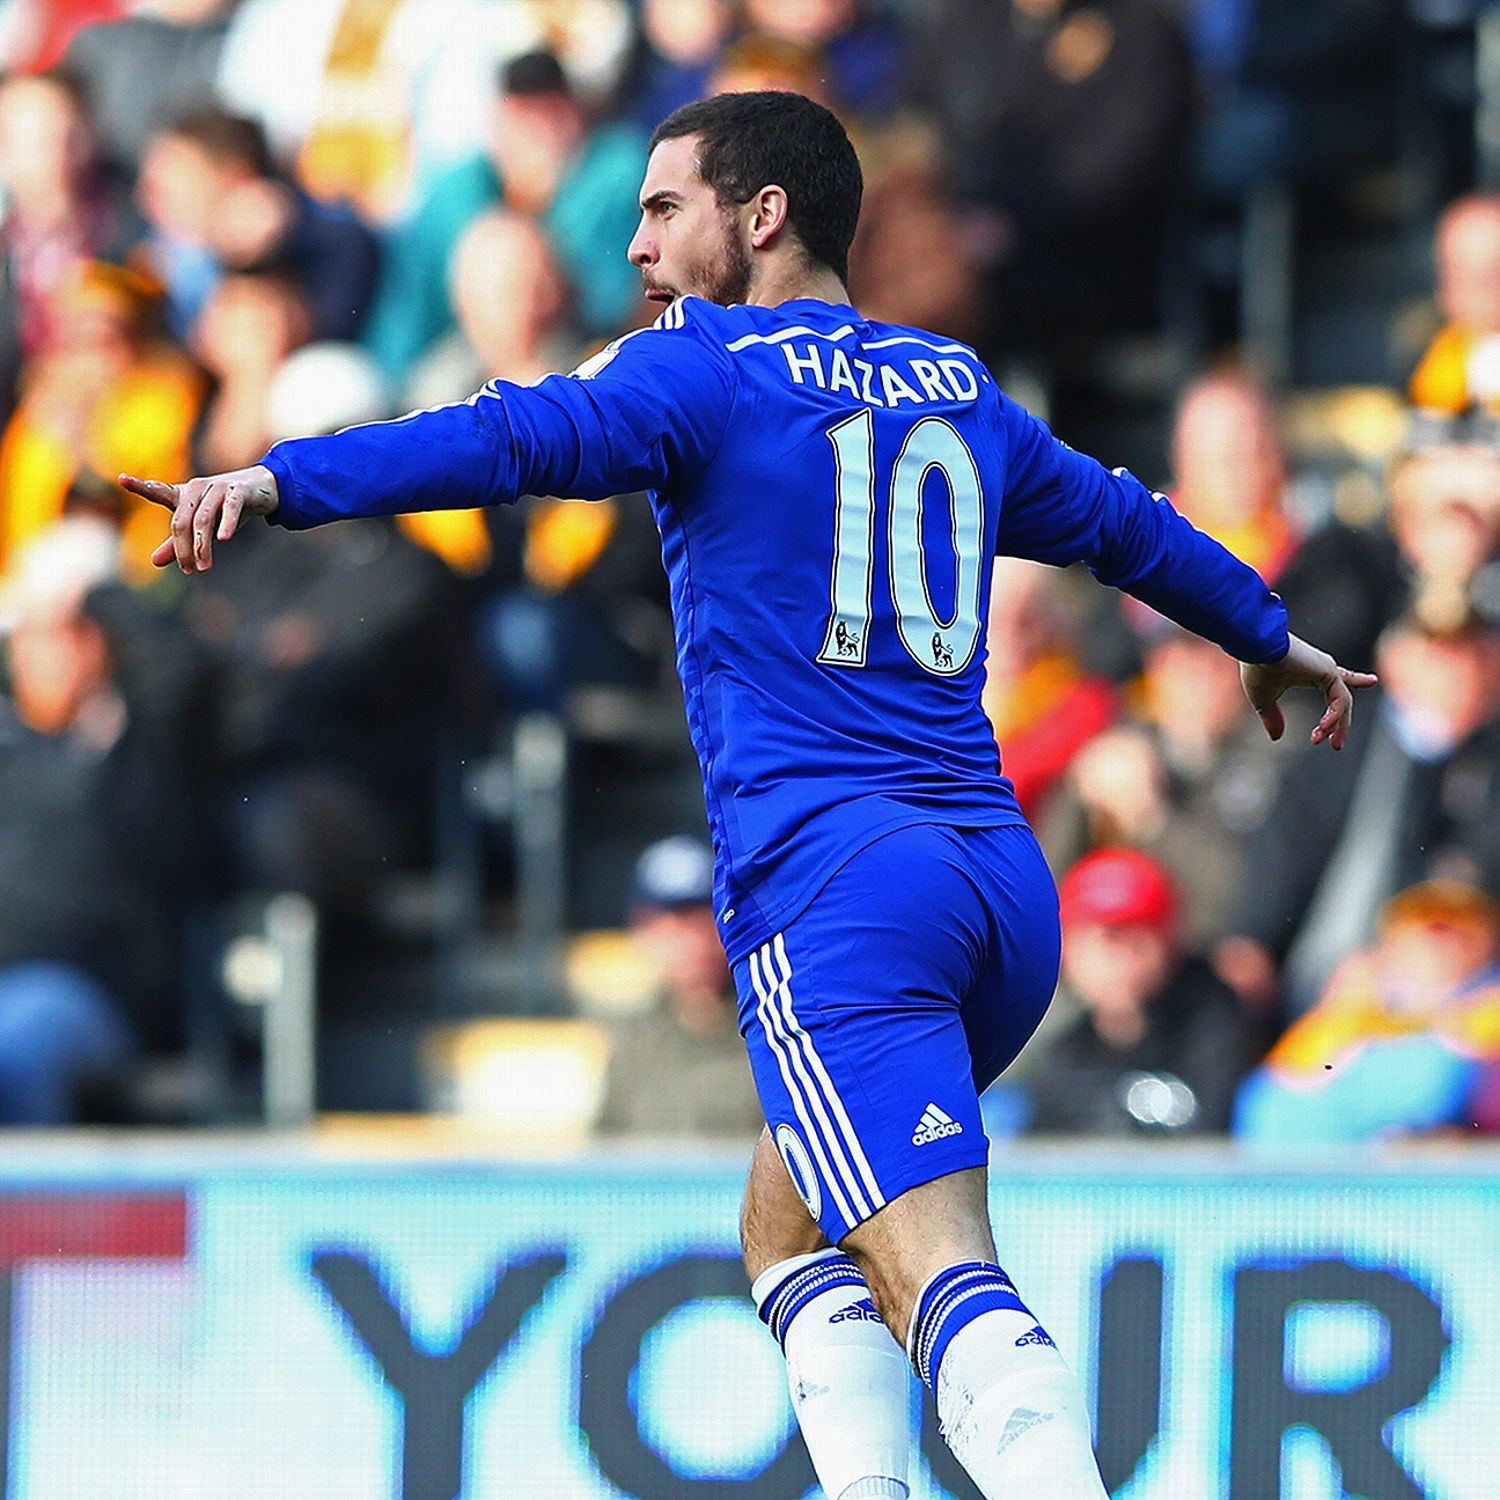 Eden Hazard Leads Chelsea To Seesaw Win Over Hull City